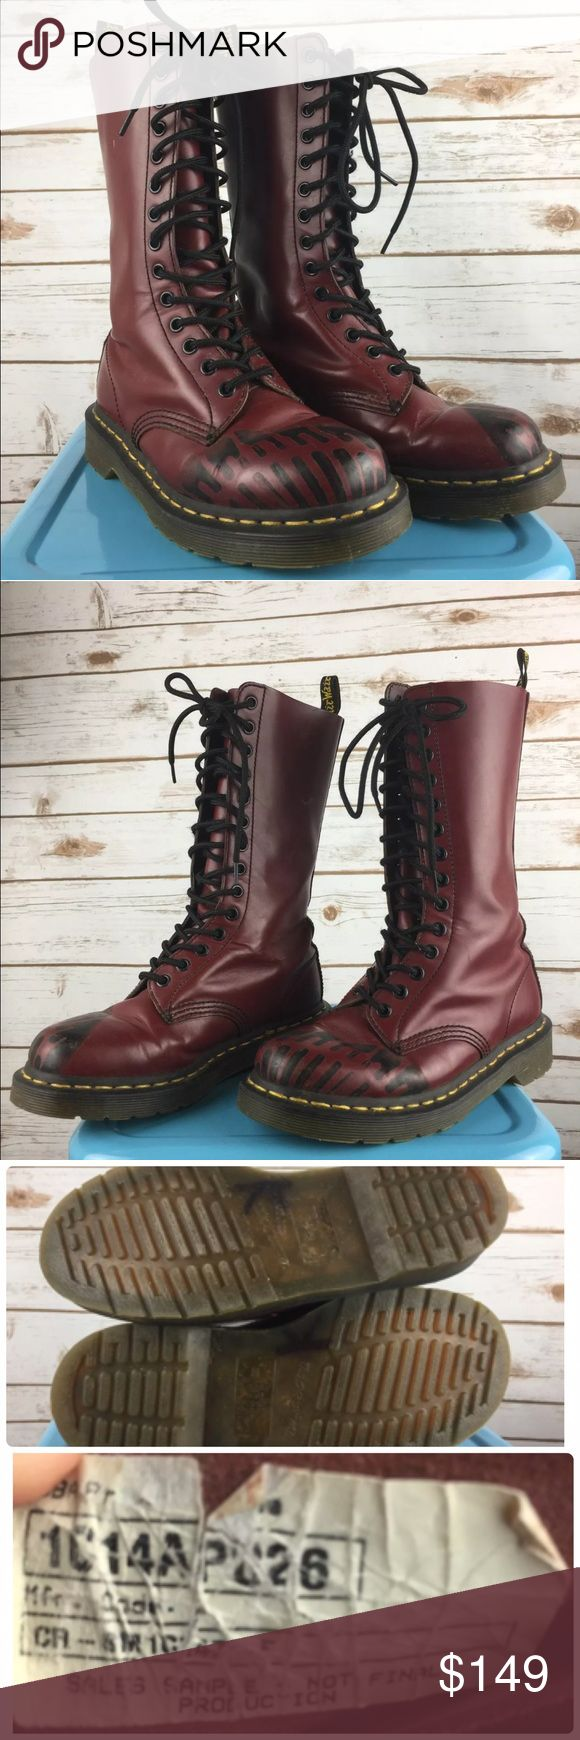 """Doc Martens Oxblood Footprint Boots Sample 6 Women Doc Martens Oxblood Footprint Boots Sales Sample Rare 14 Hole Htf Size 6 Women's Amazing sales sample doc martens. Oxblood red with a black boot print design on the toes. Some minor wear from very mild use. Soles have """"K"""" in marker on the bottom. There is no size printed on the inside. These are sales samples and very rare. The inside sole measures 9"""" which the doc marten website says is the equivalent to a US women's size 6. They measure…"""